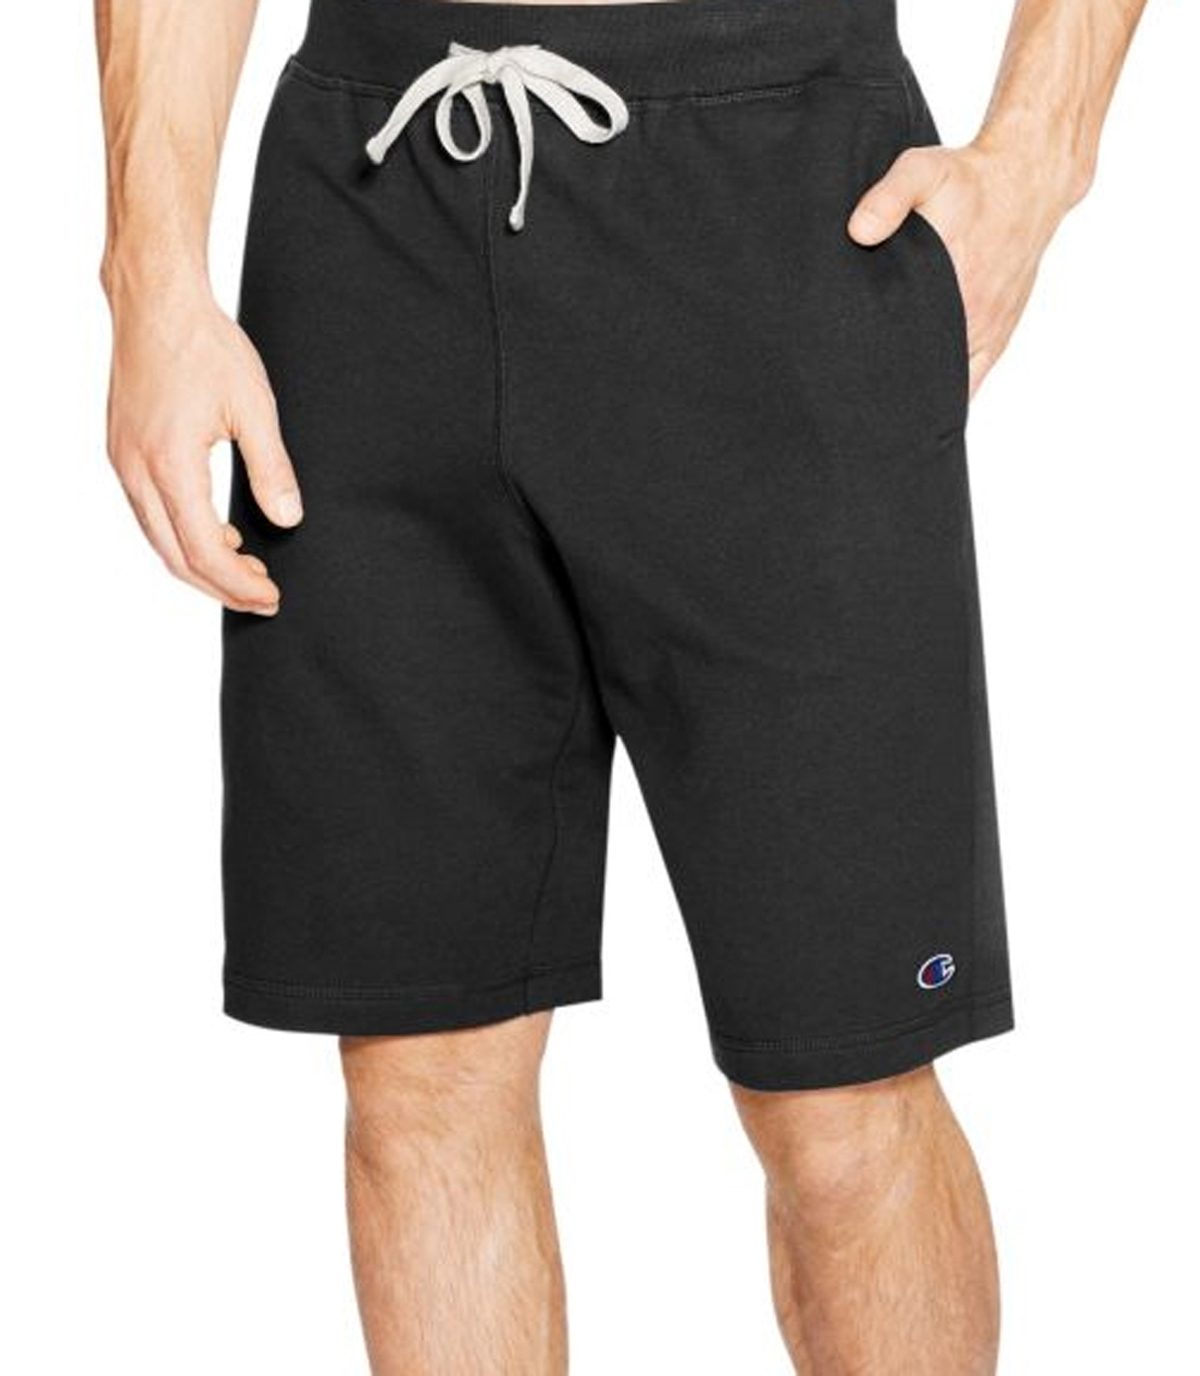 Champion Men's French Terry Short -large - 70063 - Basketball Clothing Nba Shorts Pants 70063